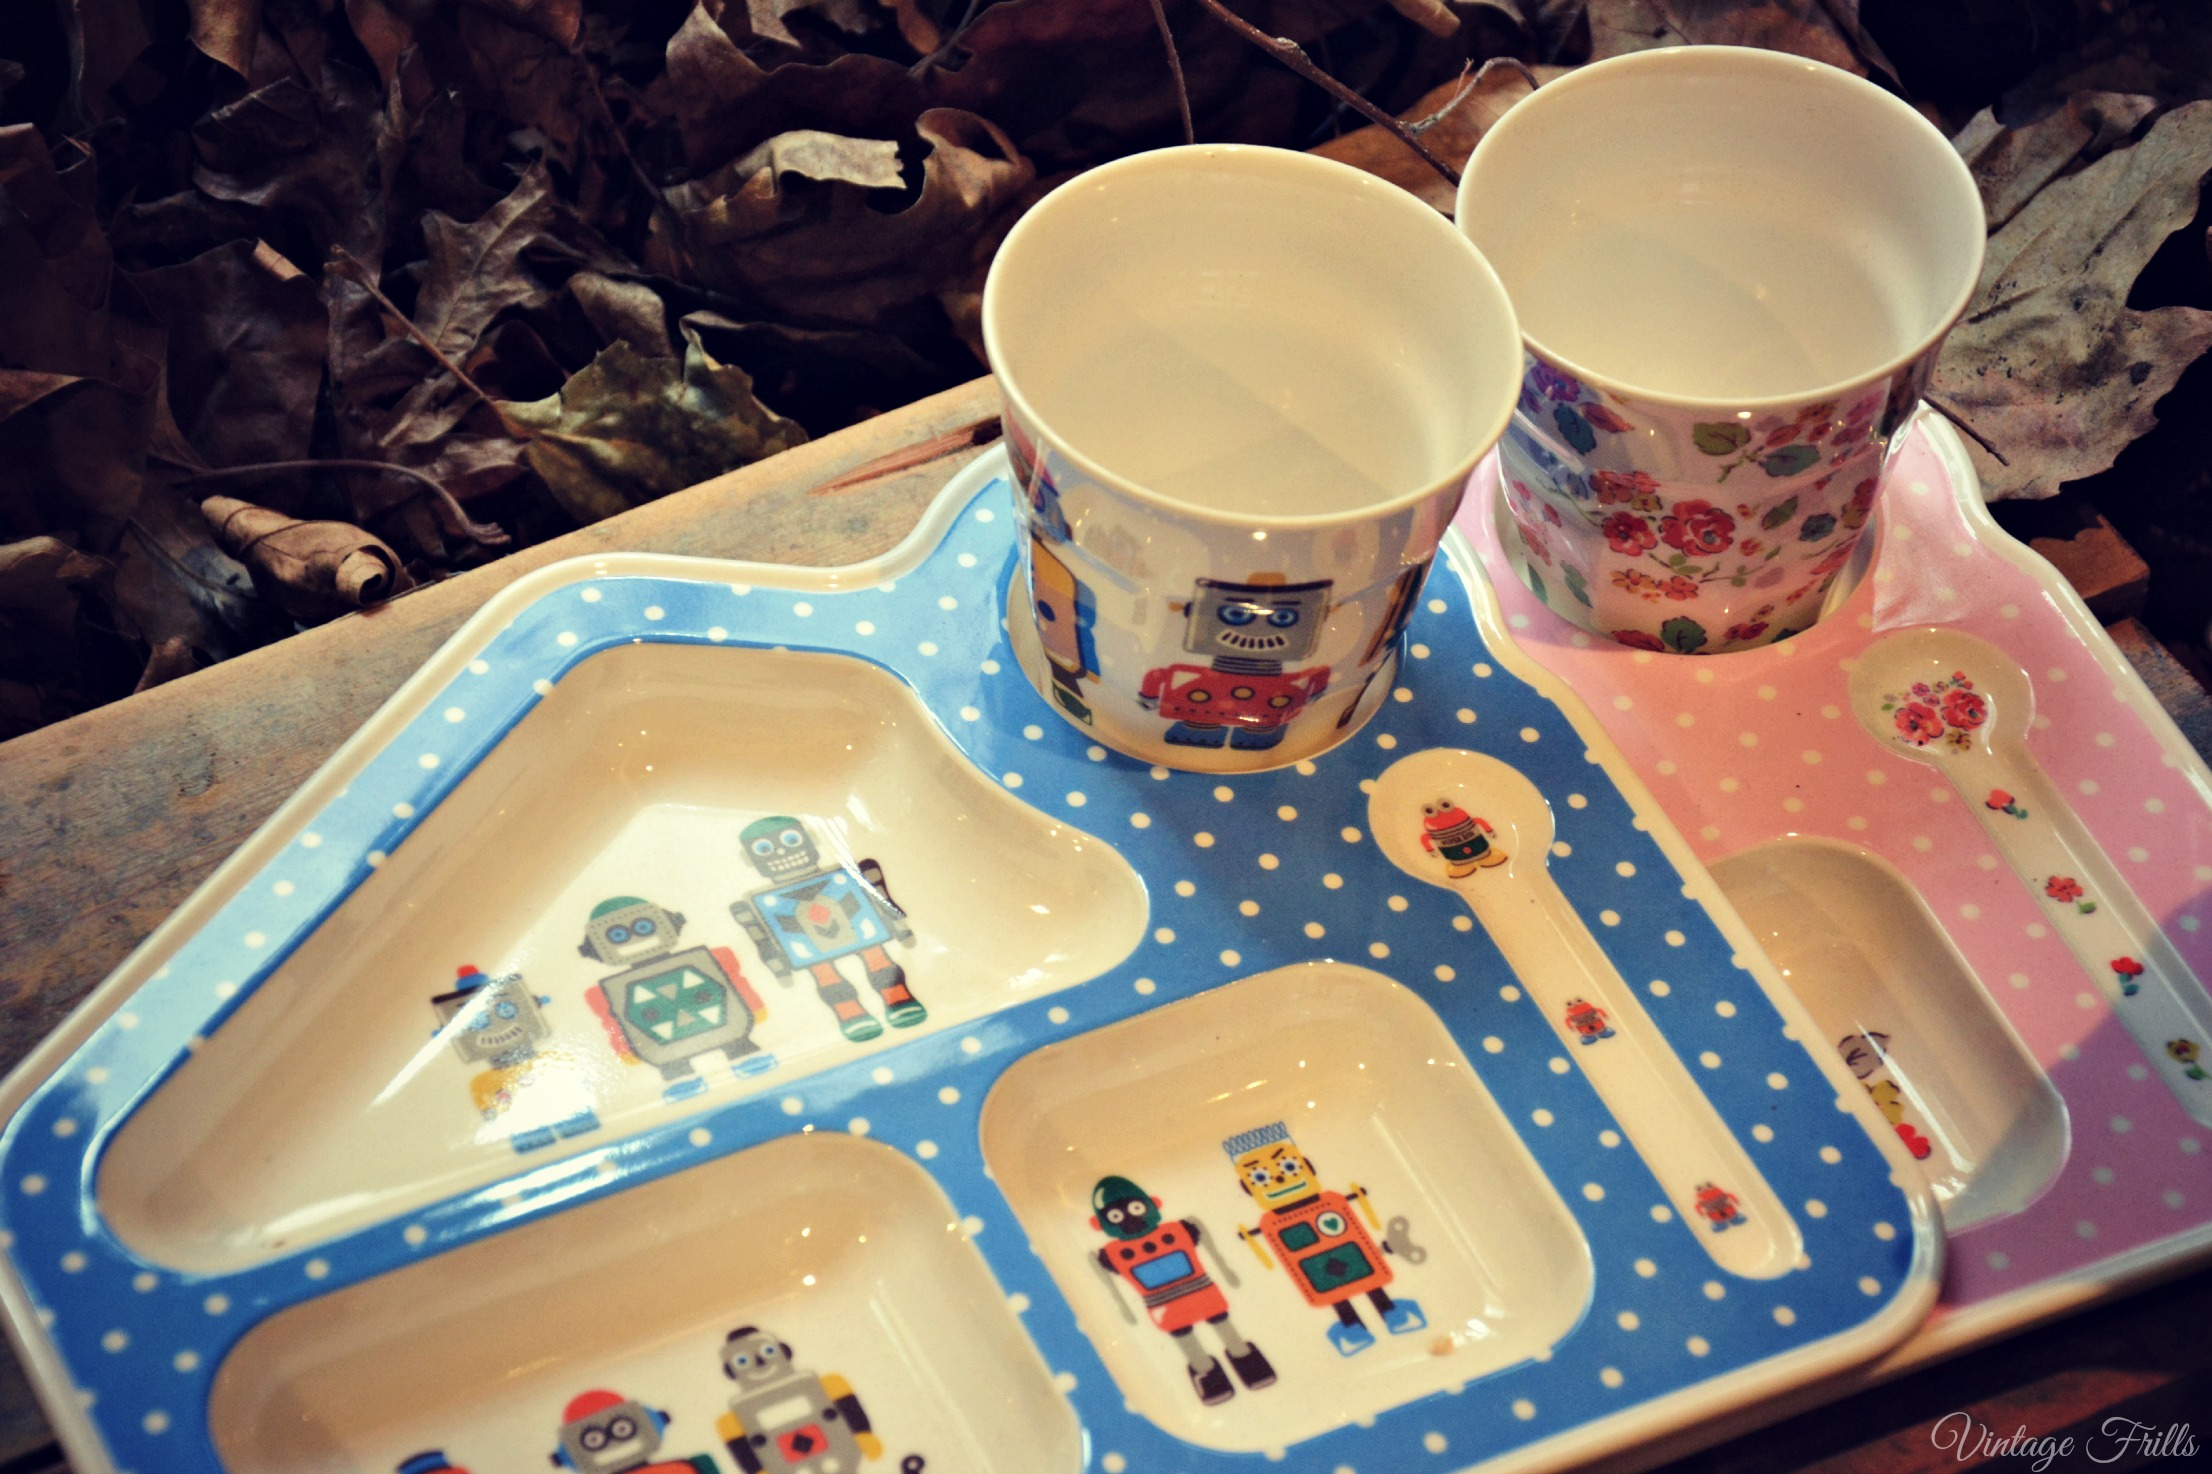 Cath Kidston AW15 Press Day - Kids Section Plates